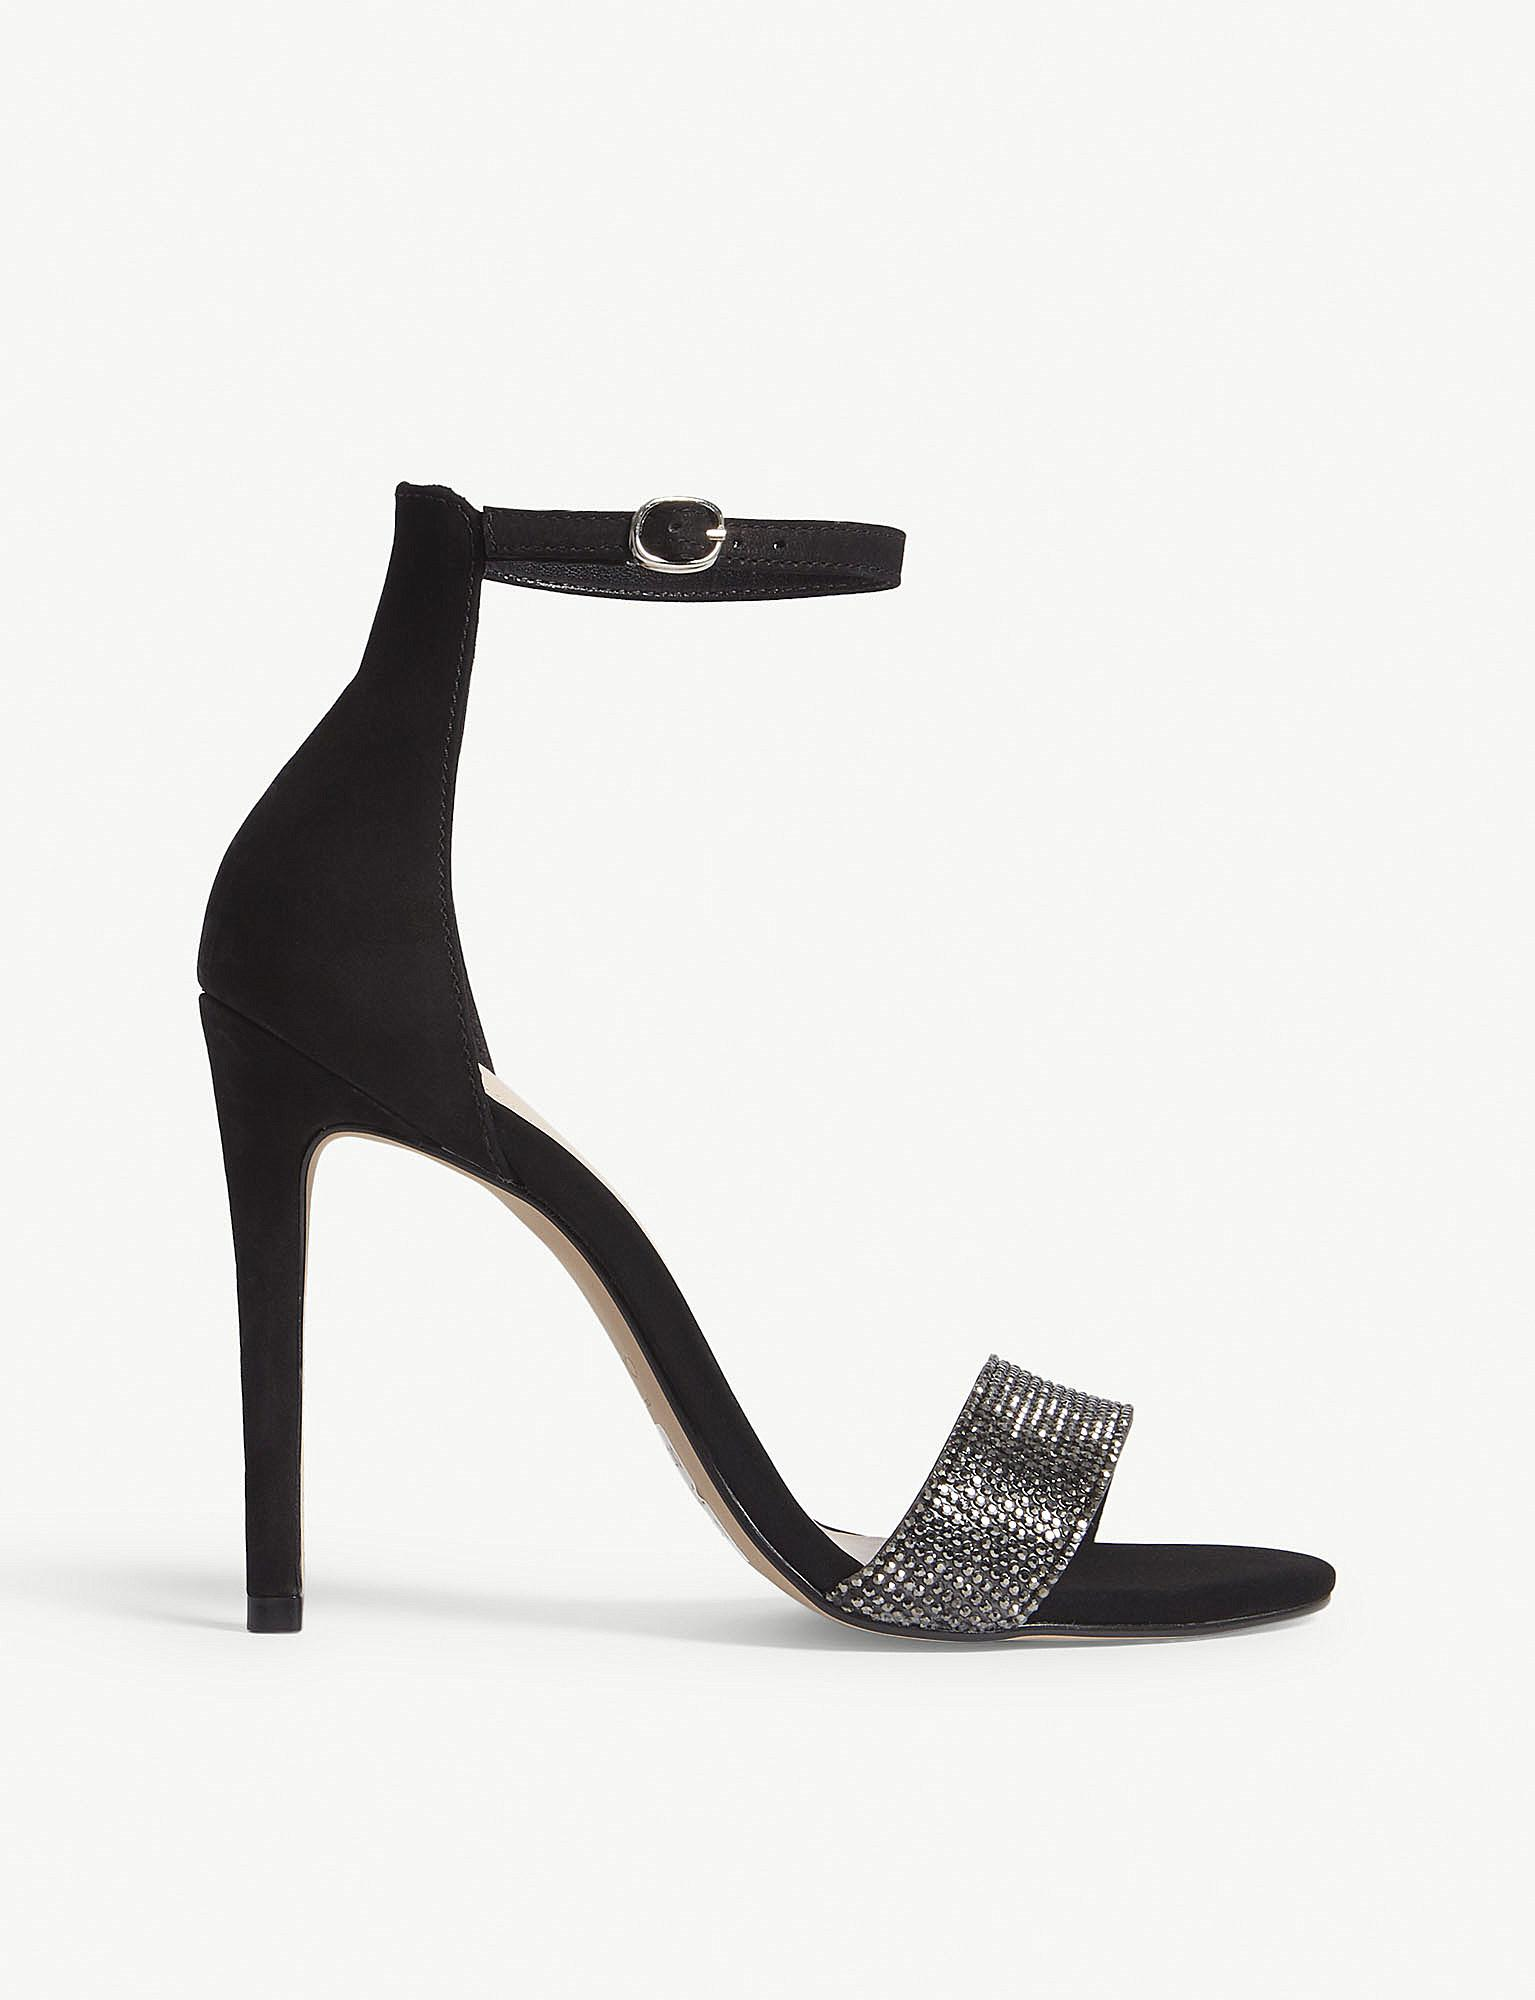 de01c6f8321 Lyst - ALDO Kedurith High Heel Sandals in Black